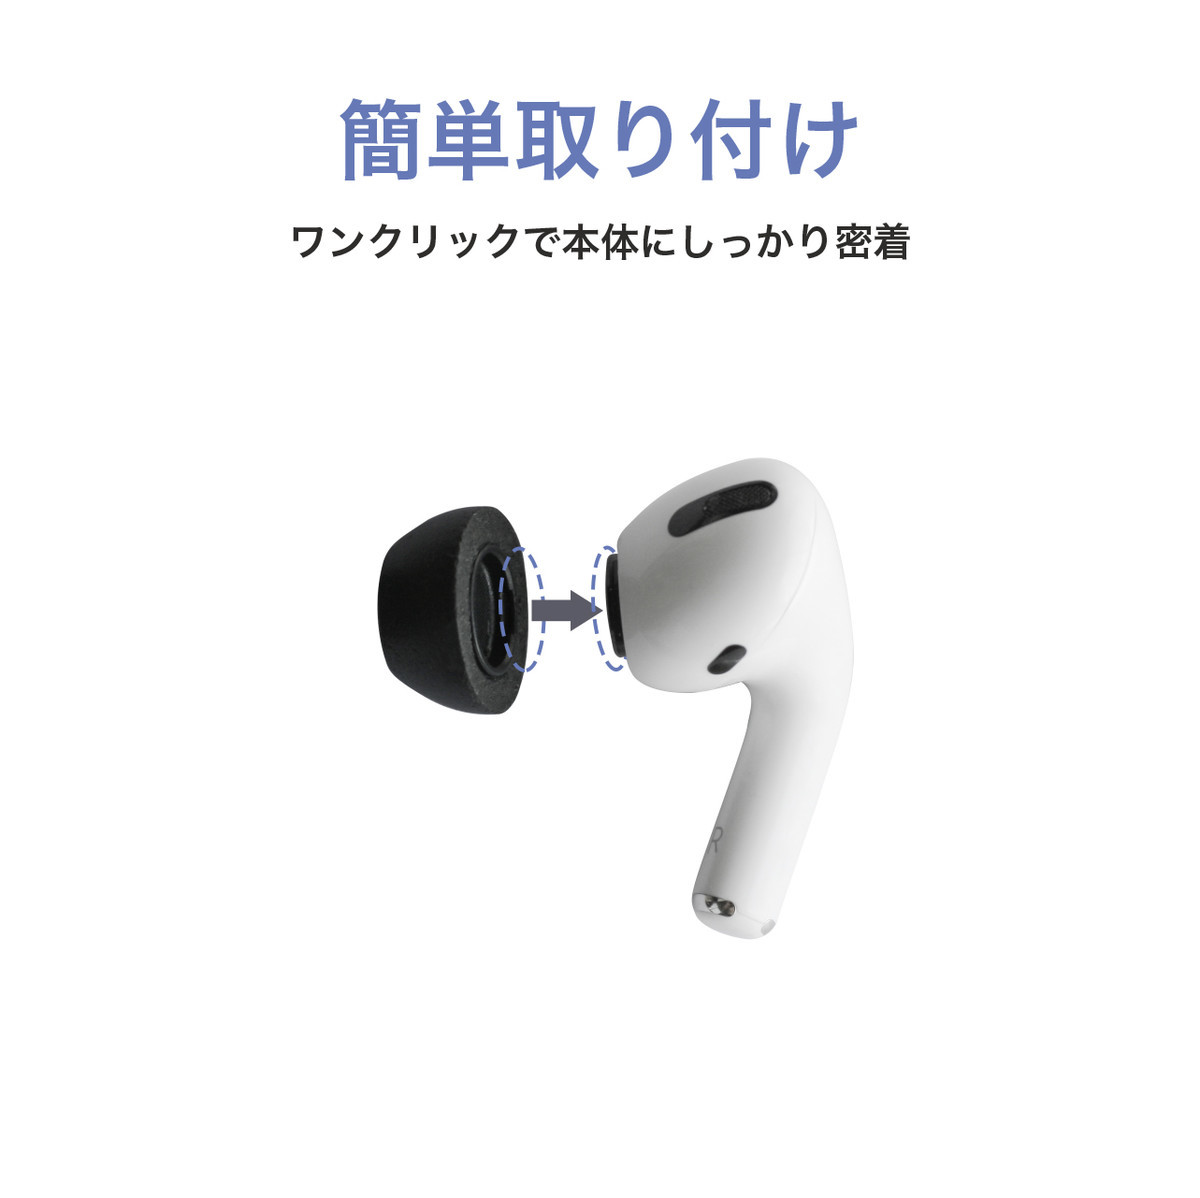 Apple AirPods Pro専用 COMPLY イヤホンチップ